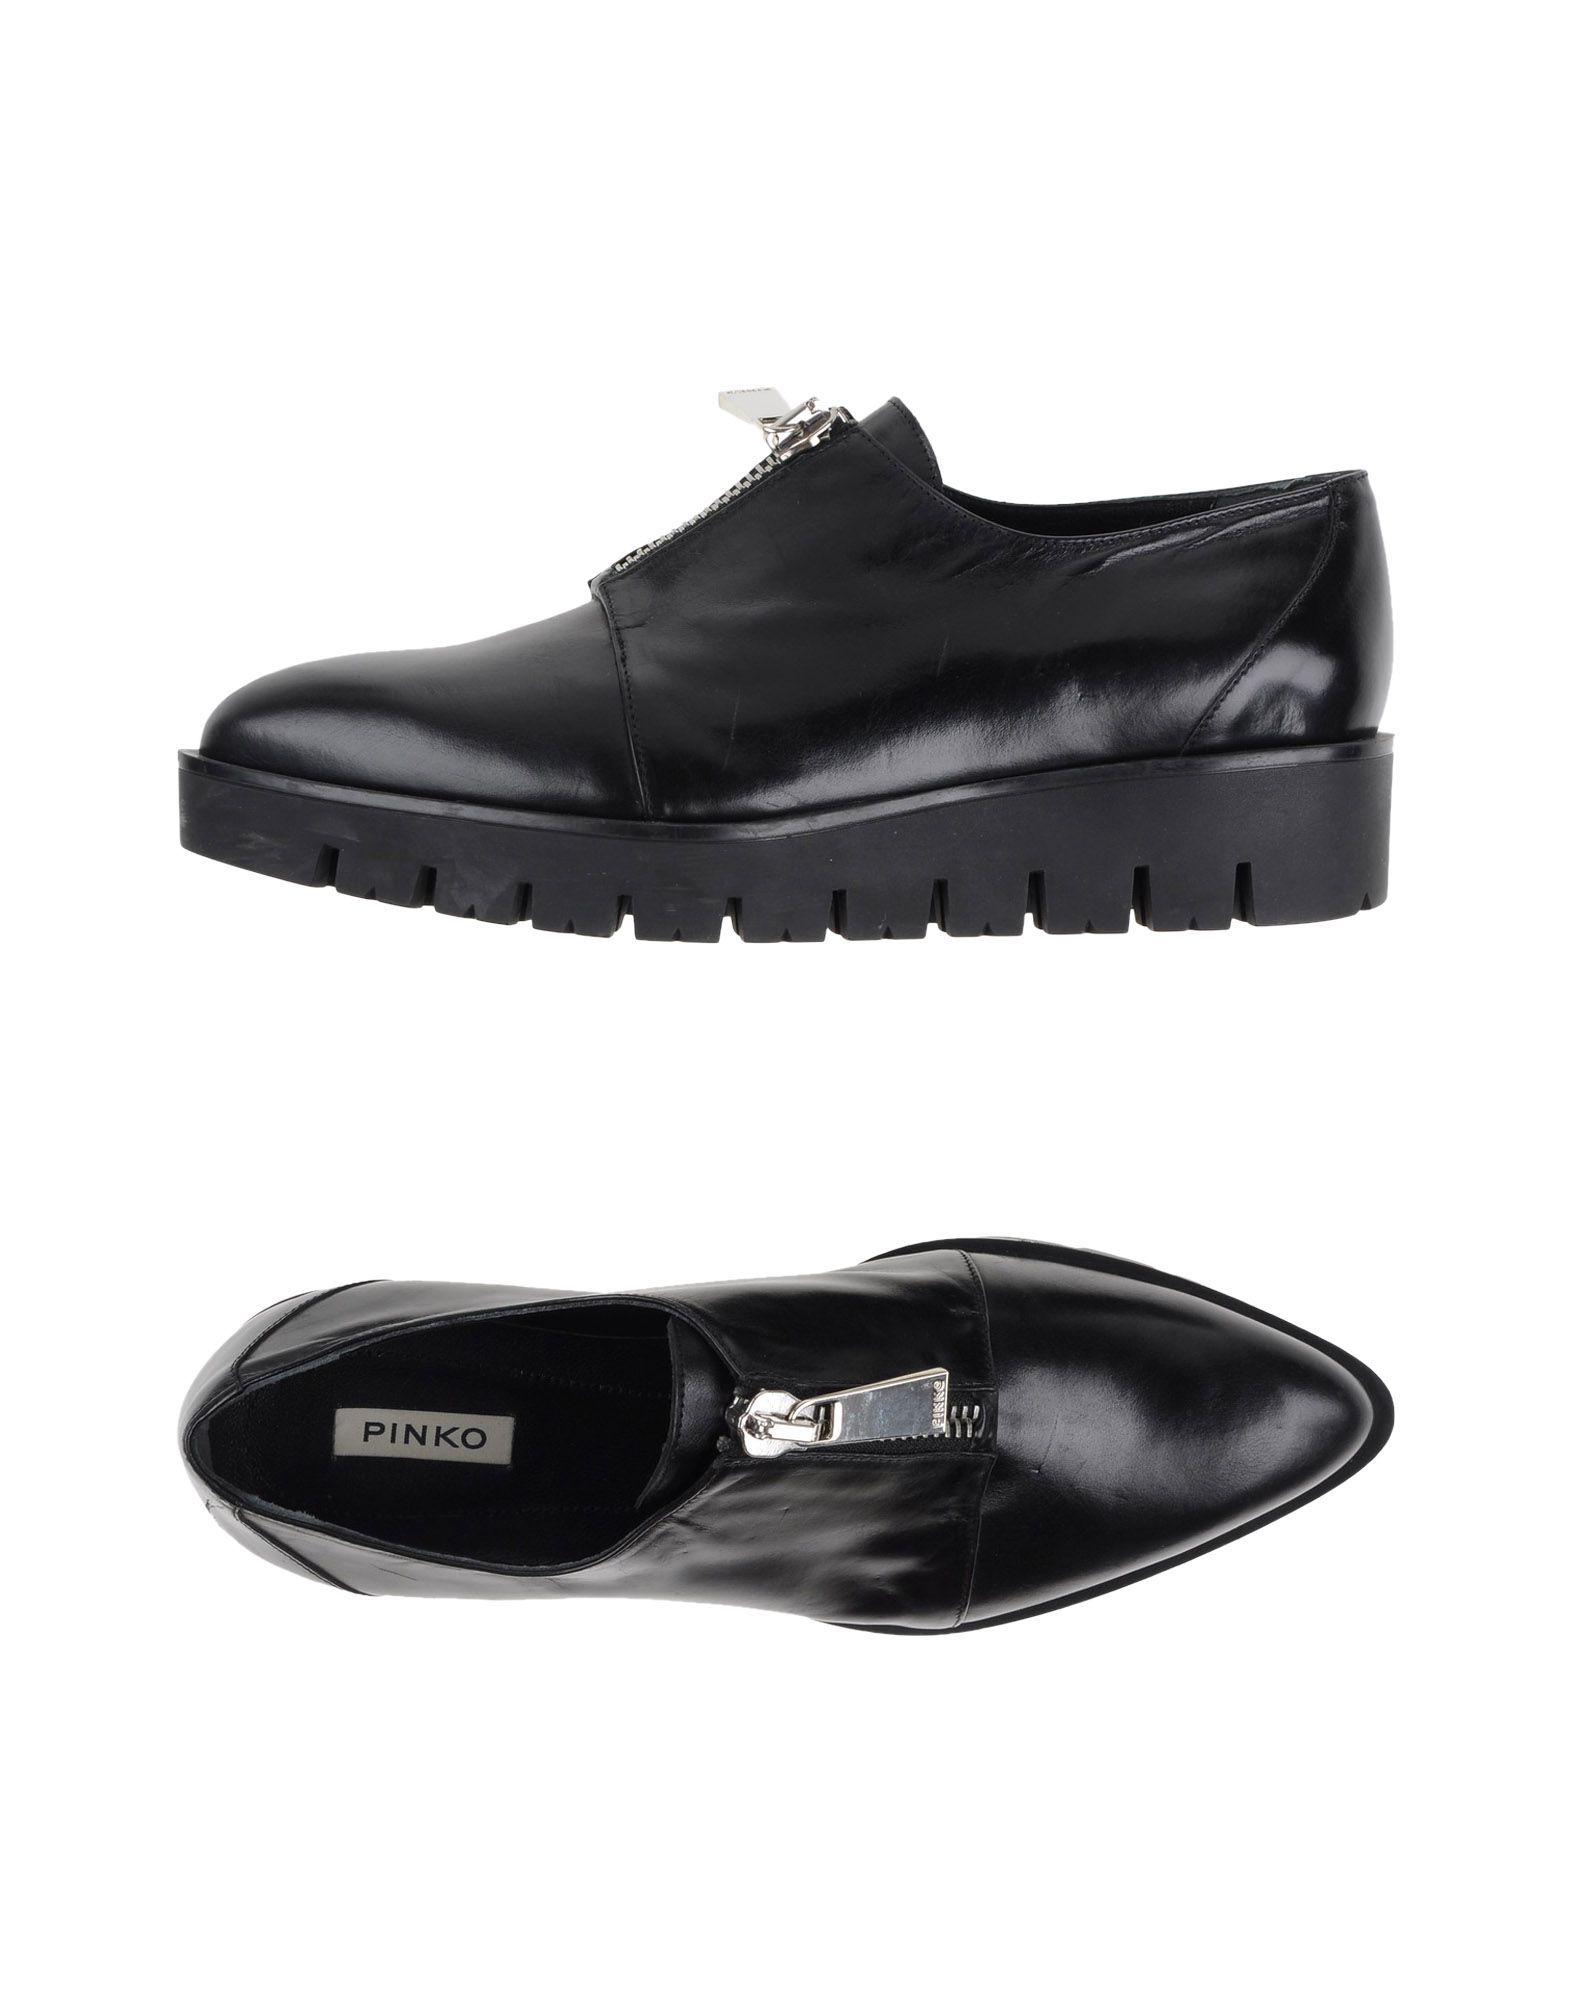 Pinko Black Calf Leather Lace Up Flat Shoes